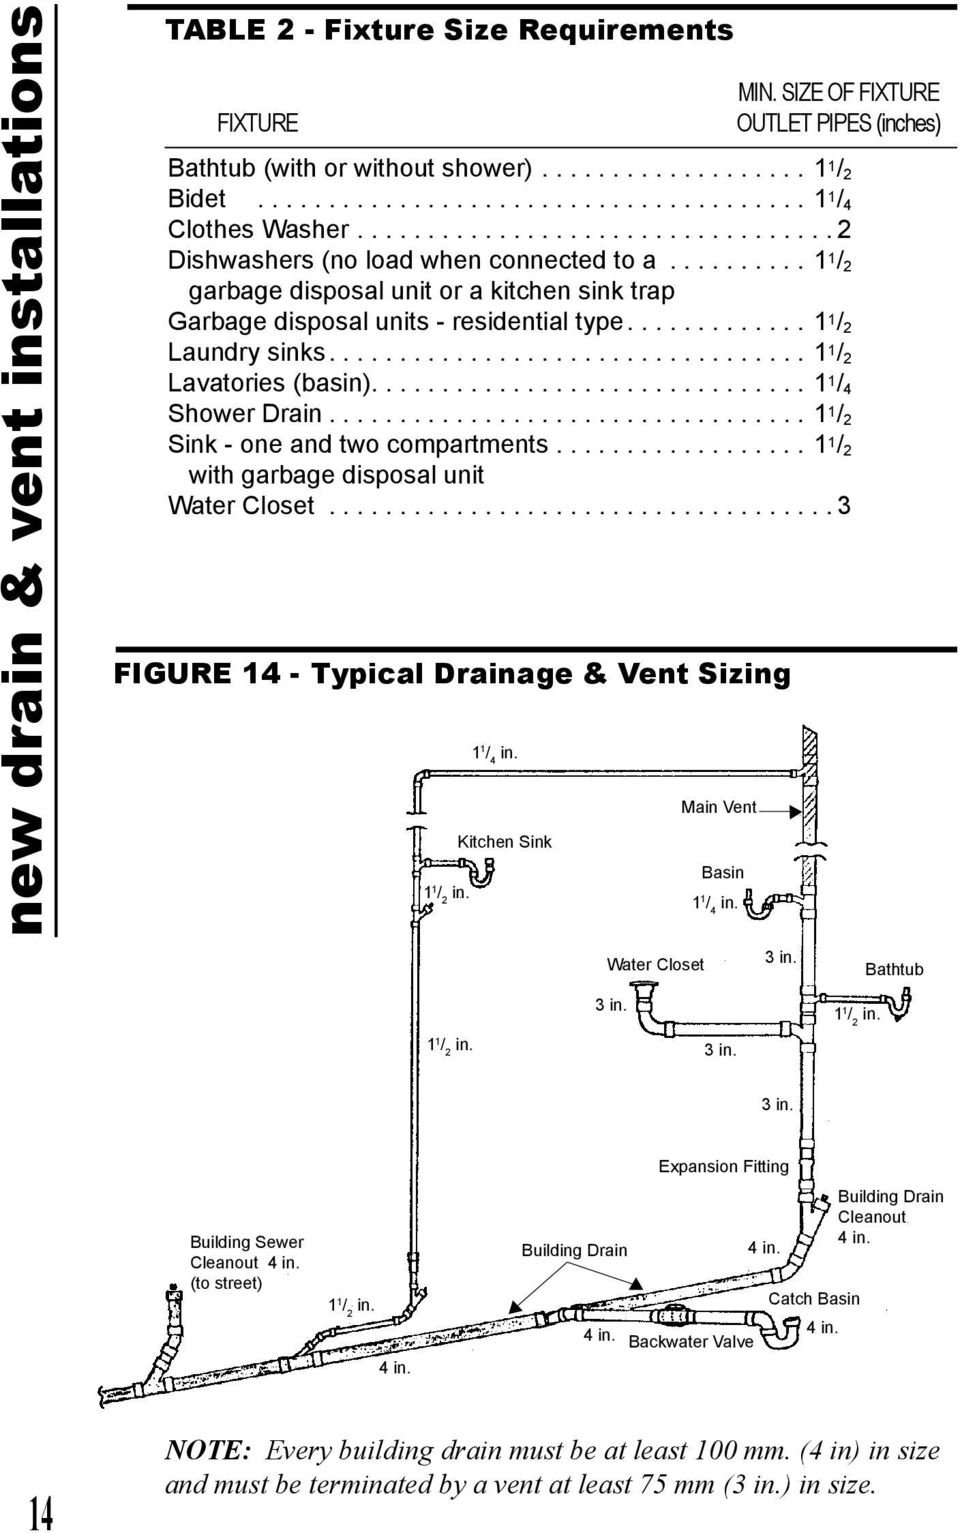 .............................. 1 1 / 4 Shower Drain...1 1 / 2 Sink - one and two compartments...1 1 / 2 with garbage disposal unit Water Closet...3 FIGURE 14 - Typical Drainage & Vent Sizing 1 1 / 2 in.